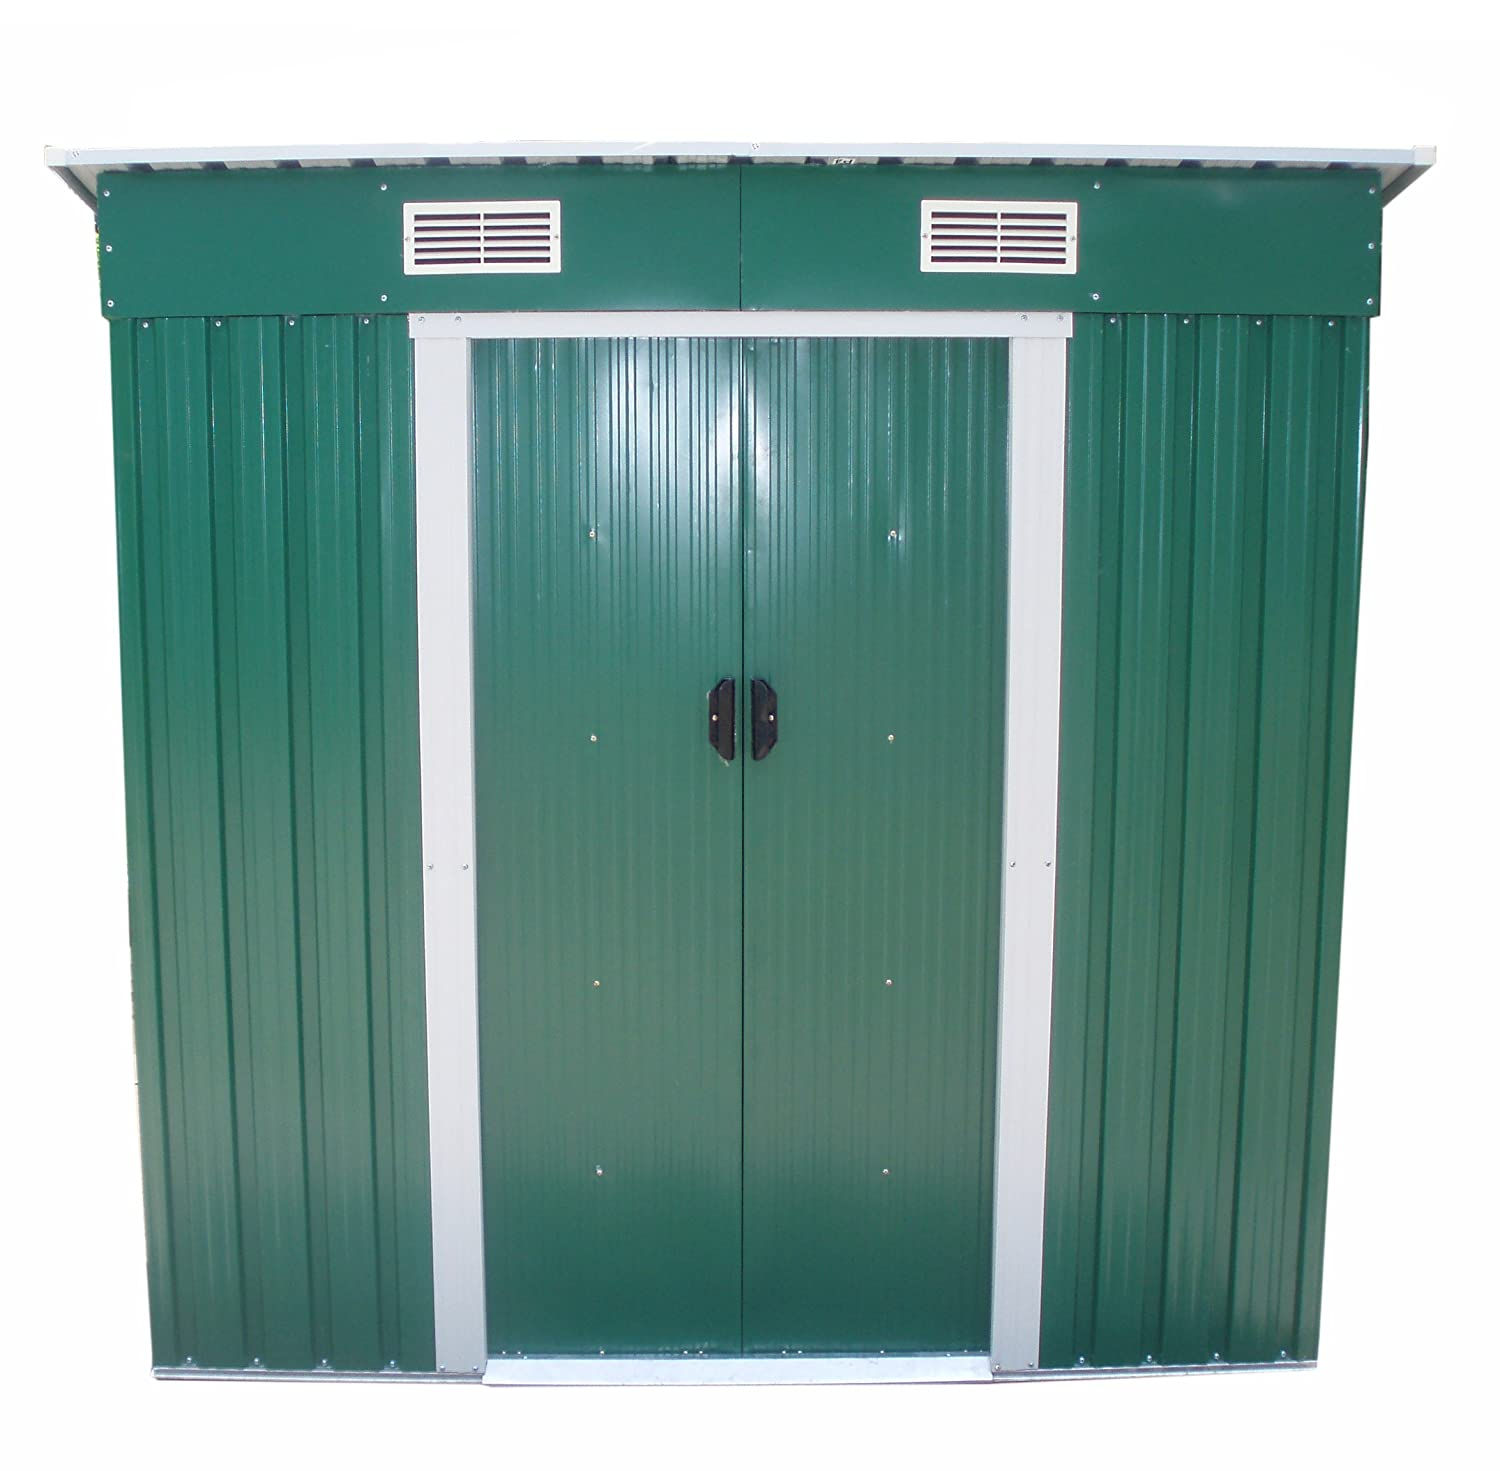 foxhunter garden shed metal pent roof 4ft x 6ft outdoor storage with free foundation green and white amazoncouk garden outdoors